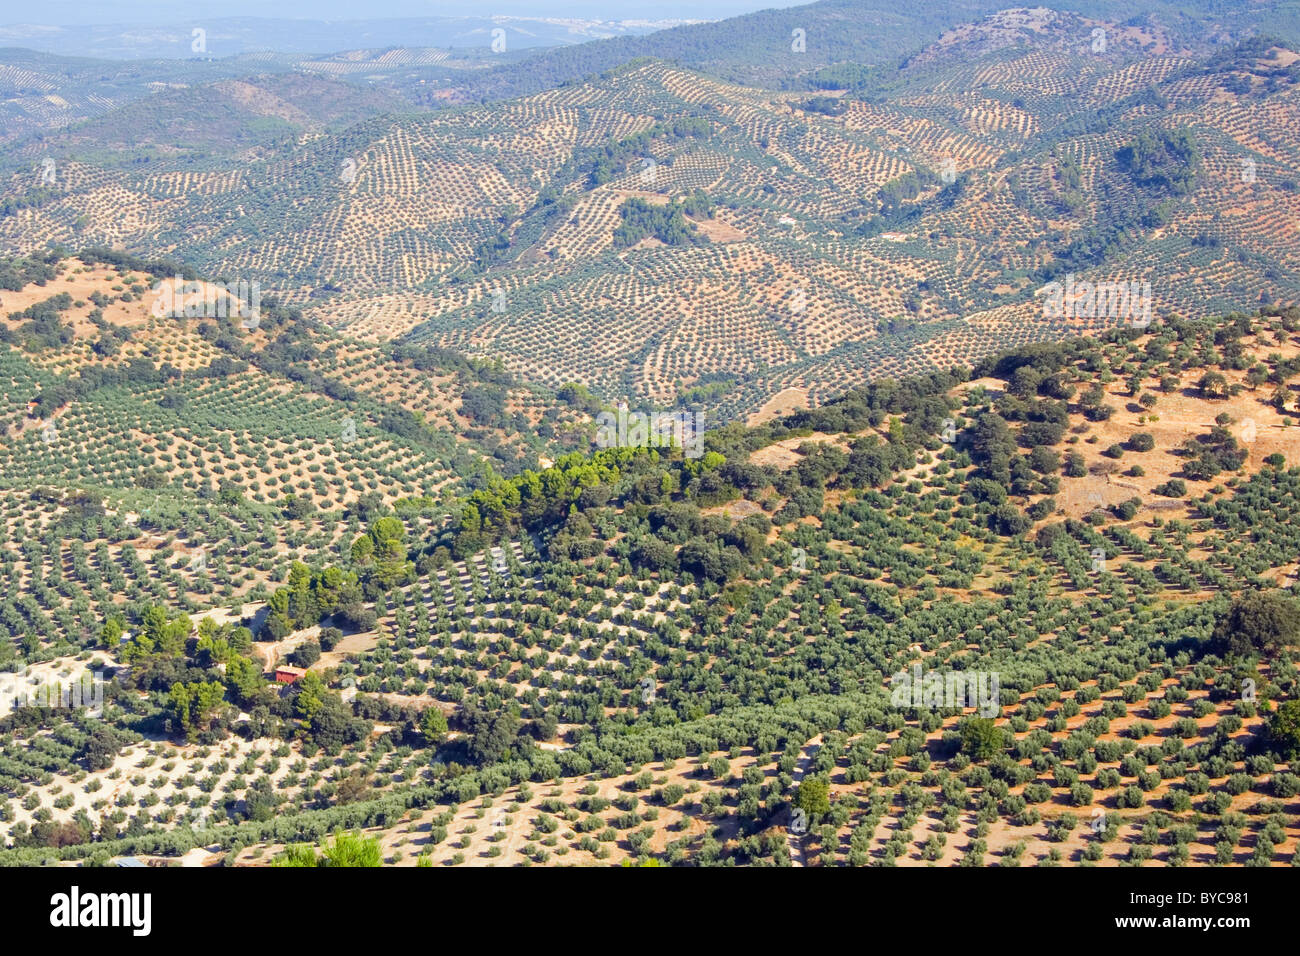 Olive groves in Jaen Province, Andalucia, Spain. Stock Photo